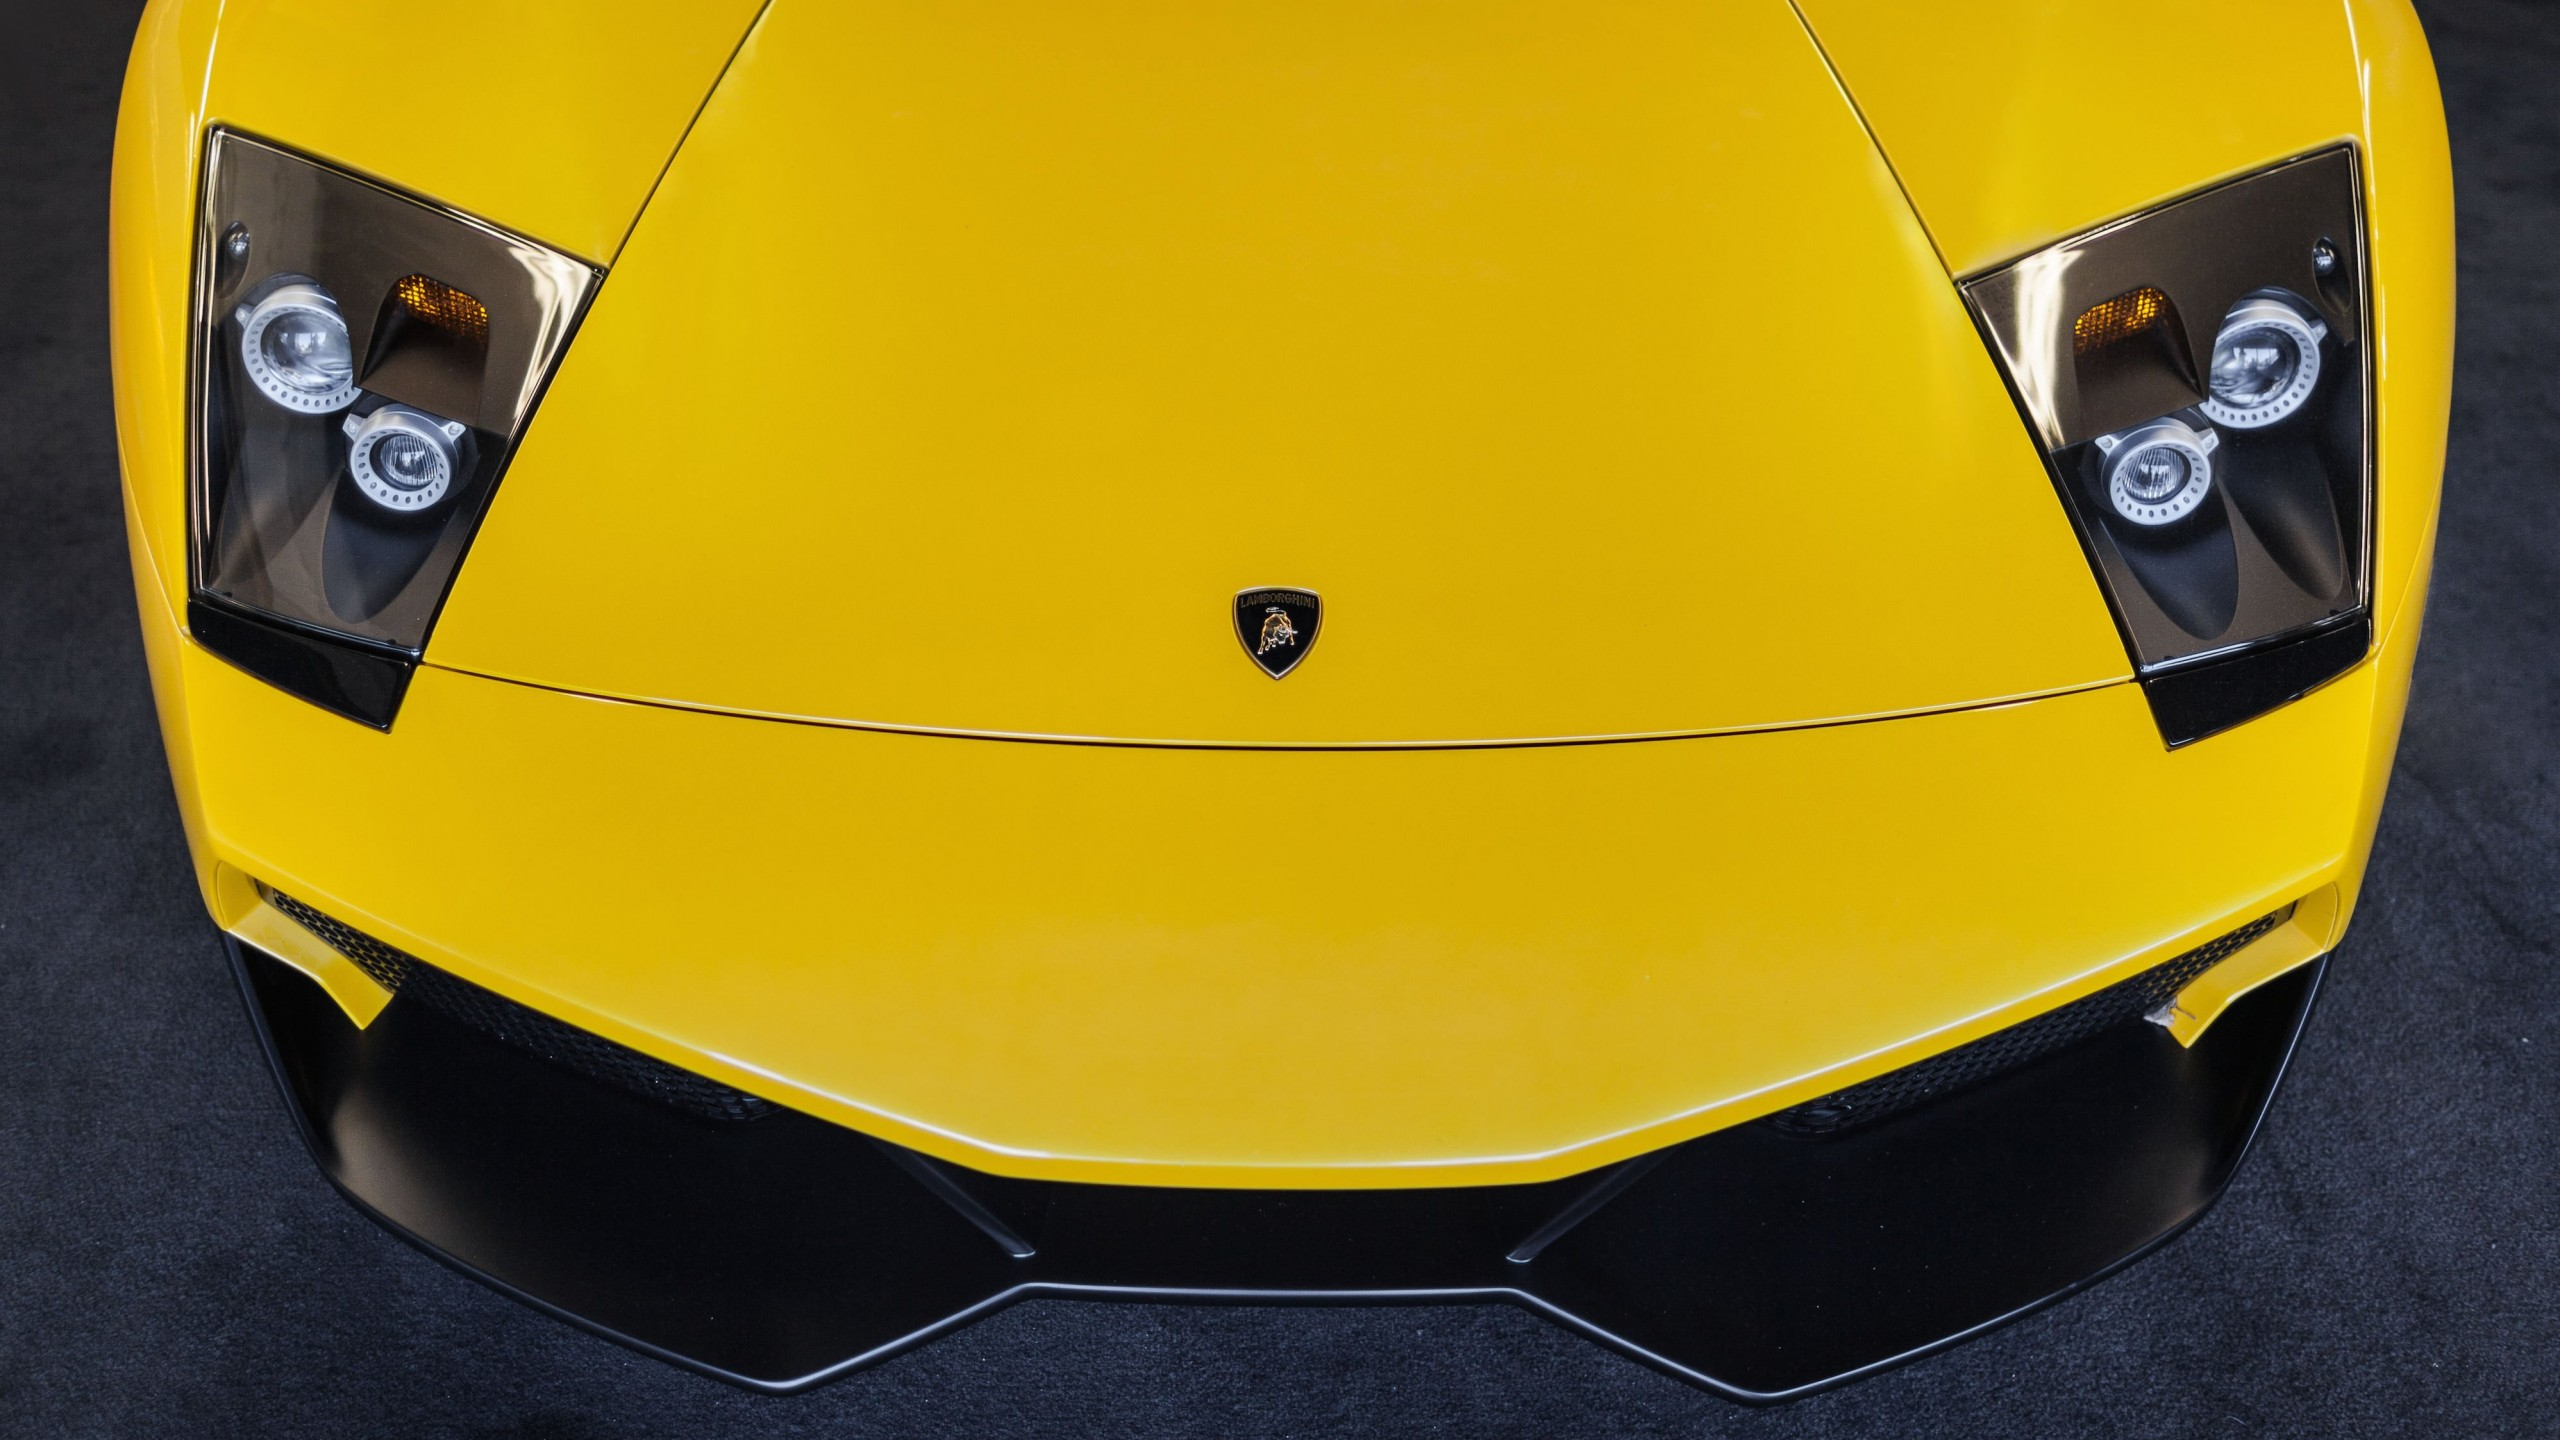 Lamborghini Murcielago LP670 Front Wallpaper for Social Media YouTube Channel Art